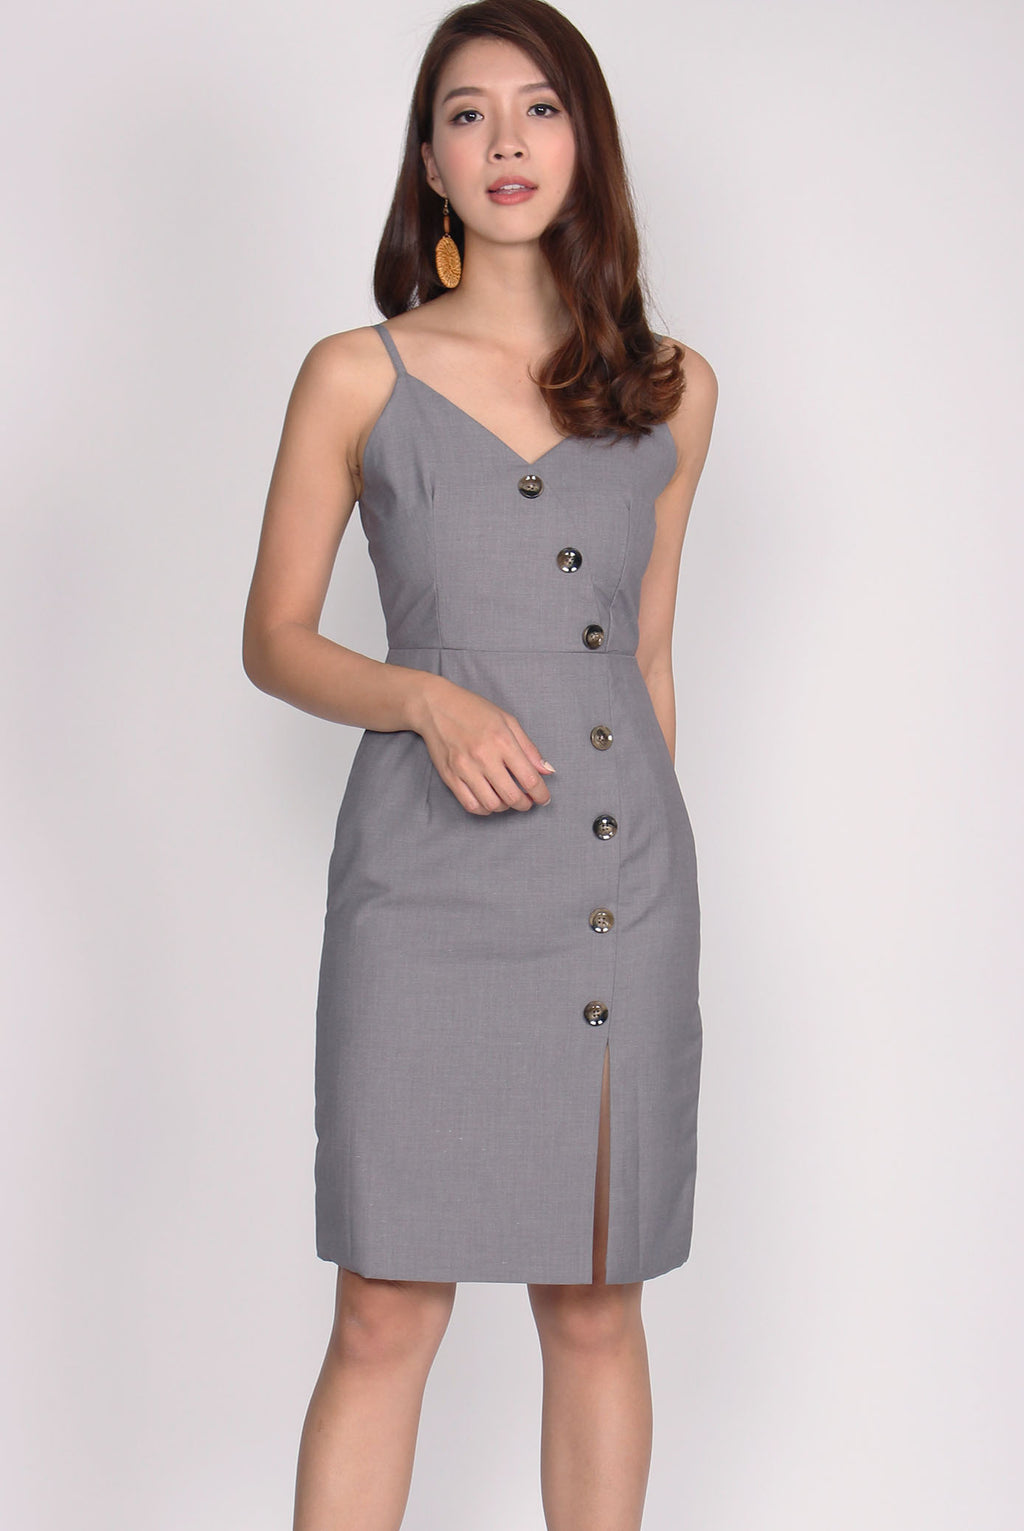 Eliette Wave Down Buttons Spag Dress In Grey